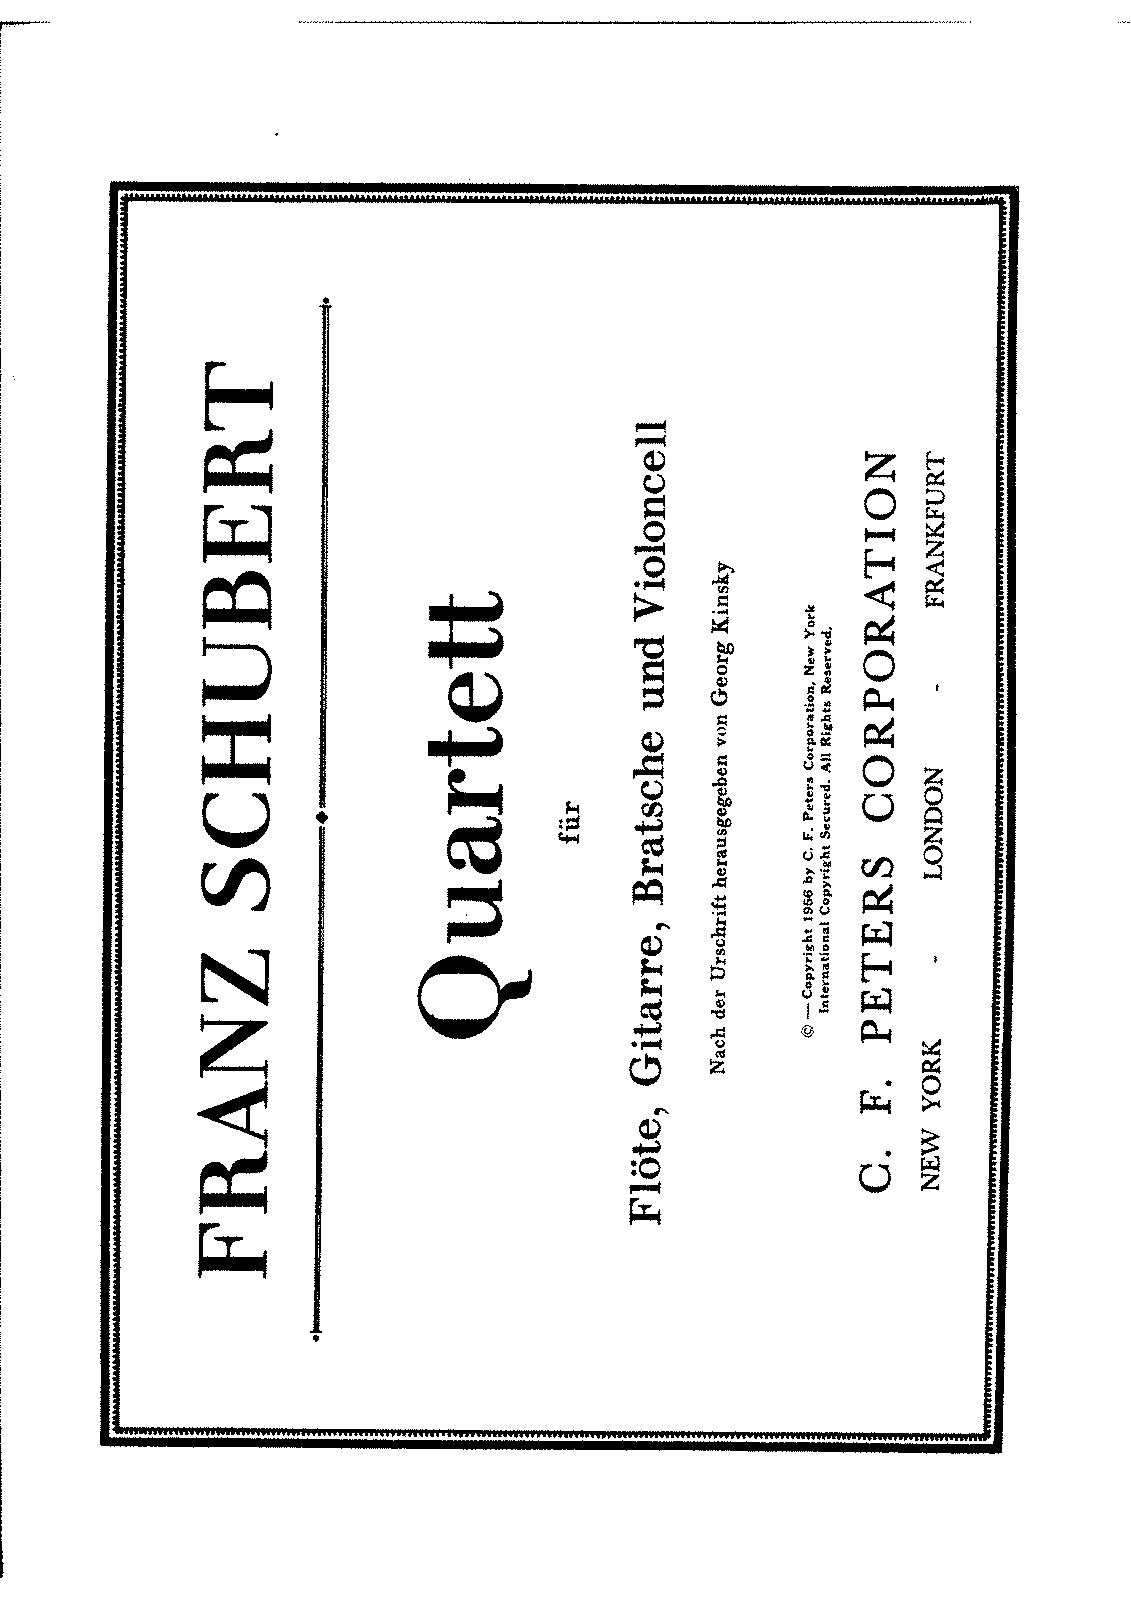 Schubert Quartet D96 (Full Score).pdf